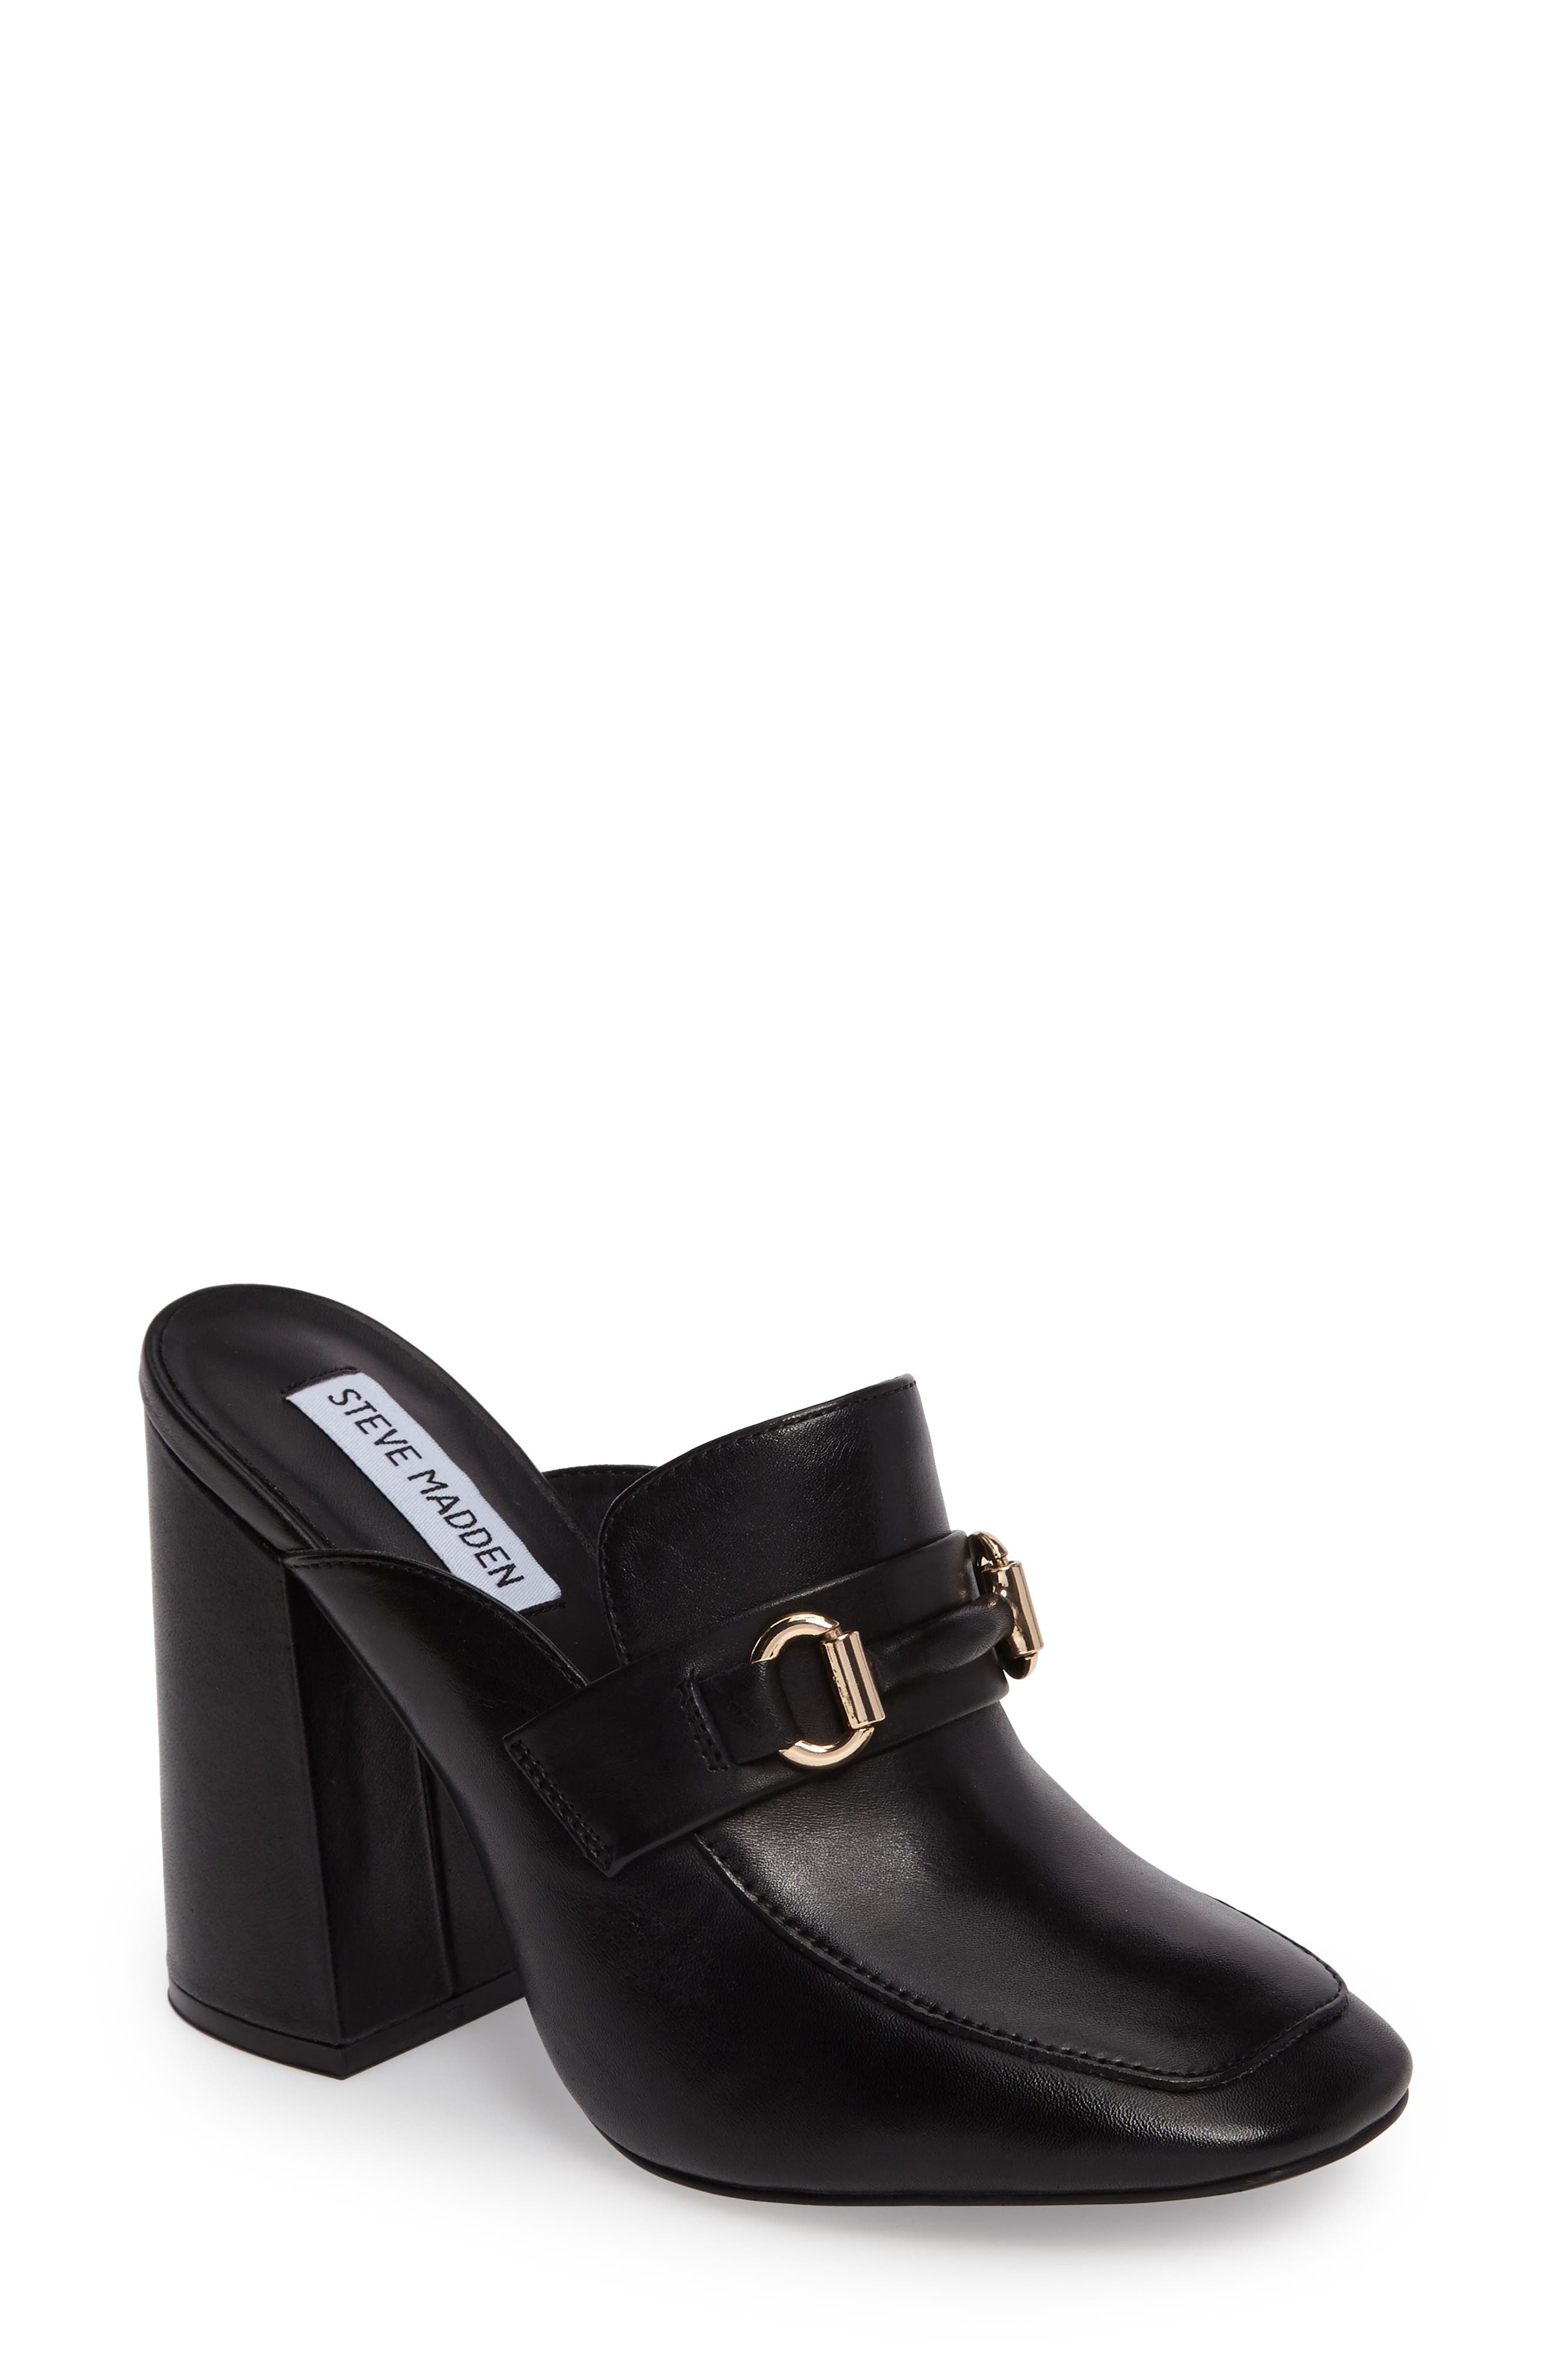 Chuckie Flared Heel Loafer Mule,                         Main,                         color, 001